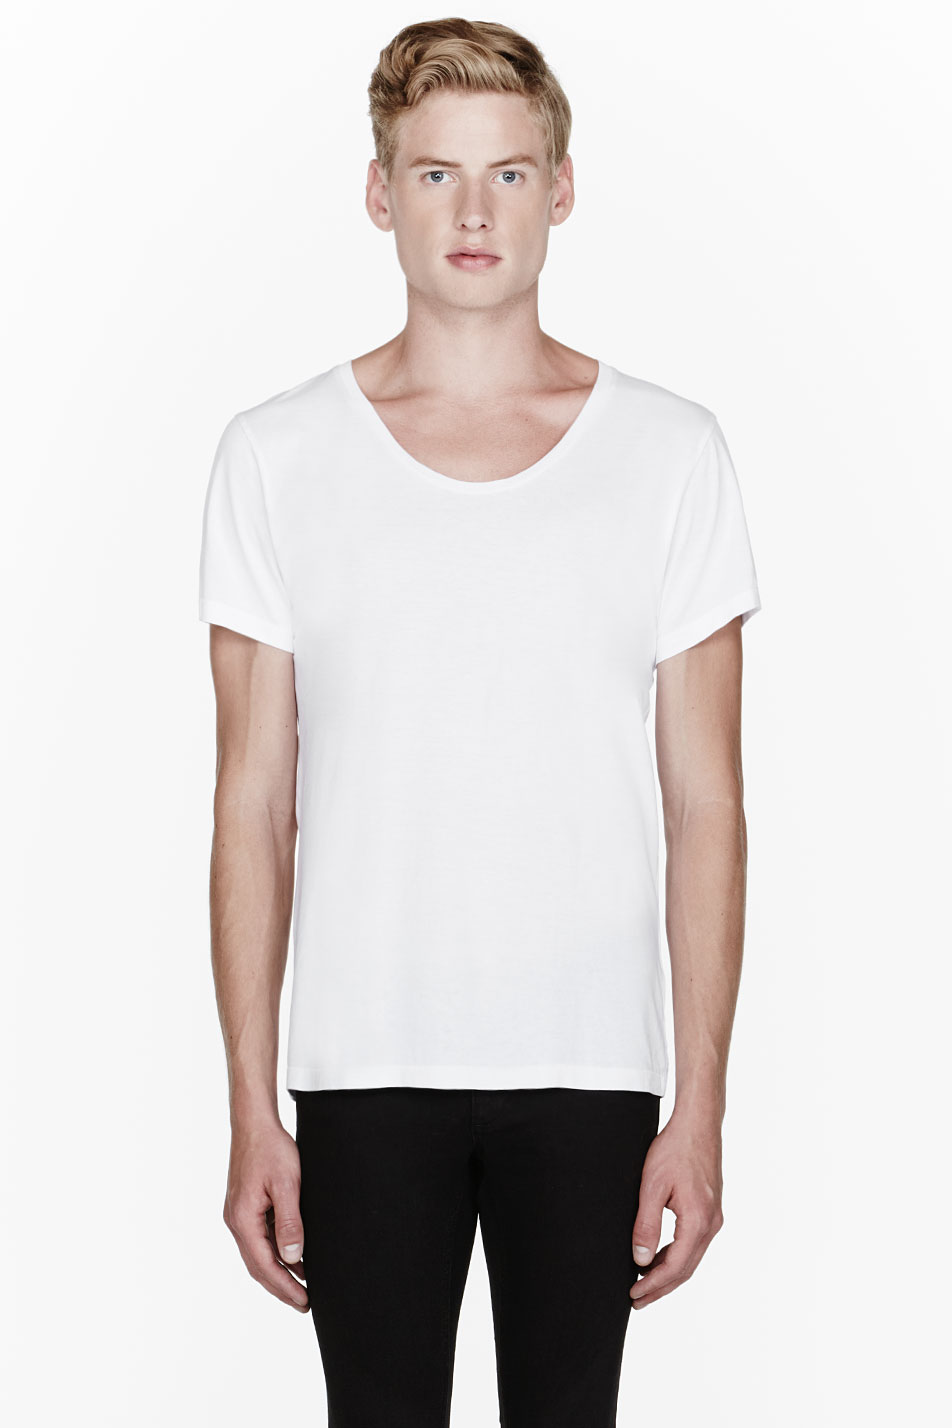 ACNE White Scoop Neck T-Shirt Ryan Gosling